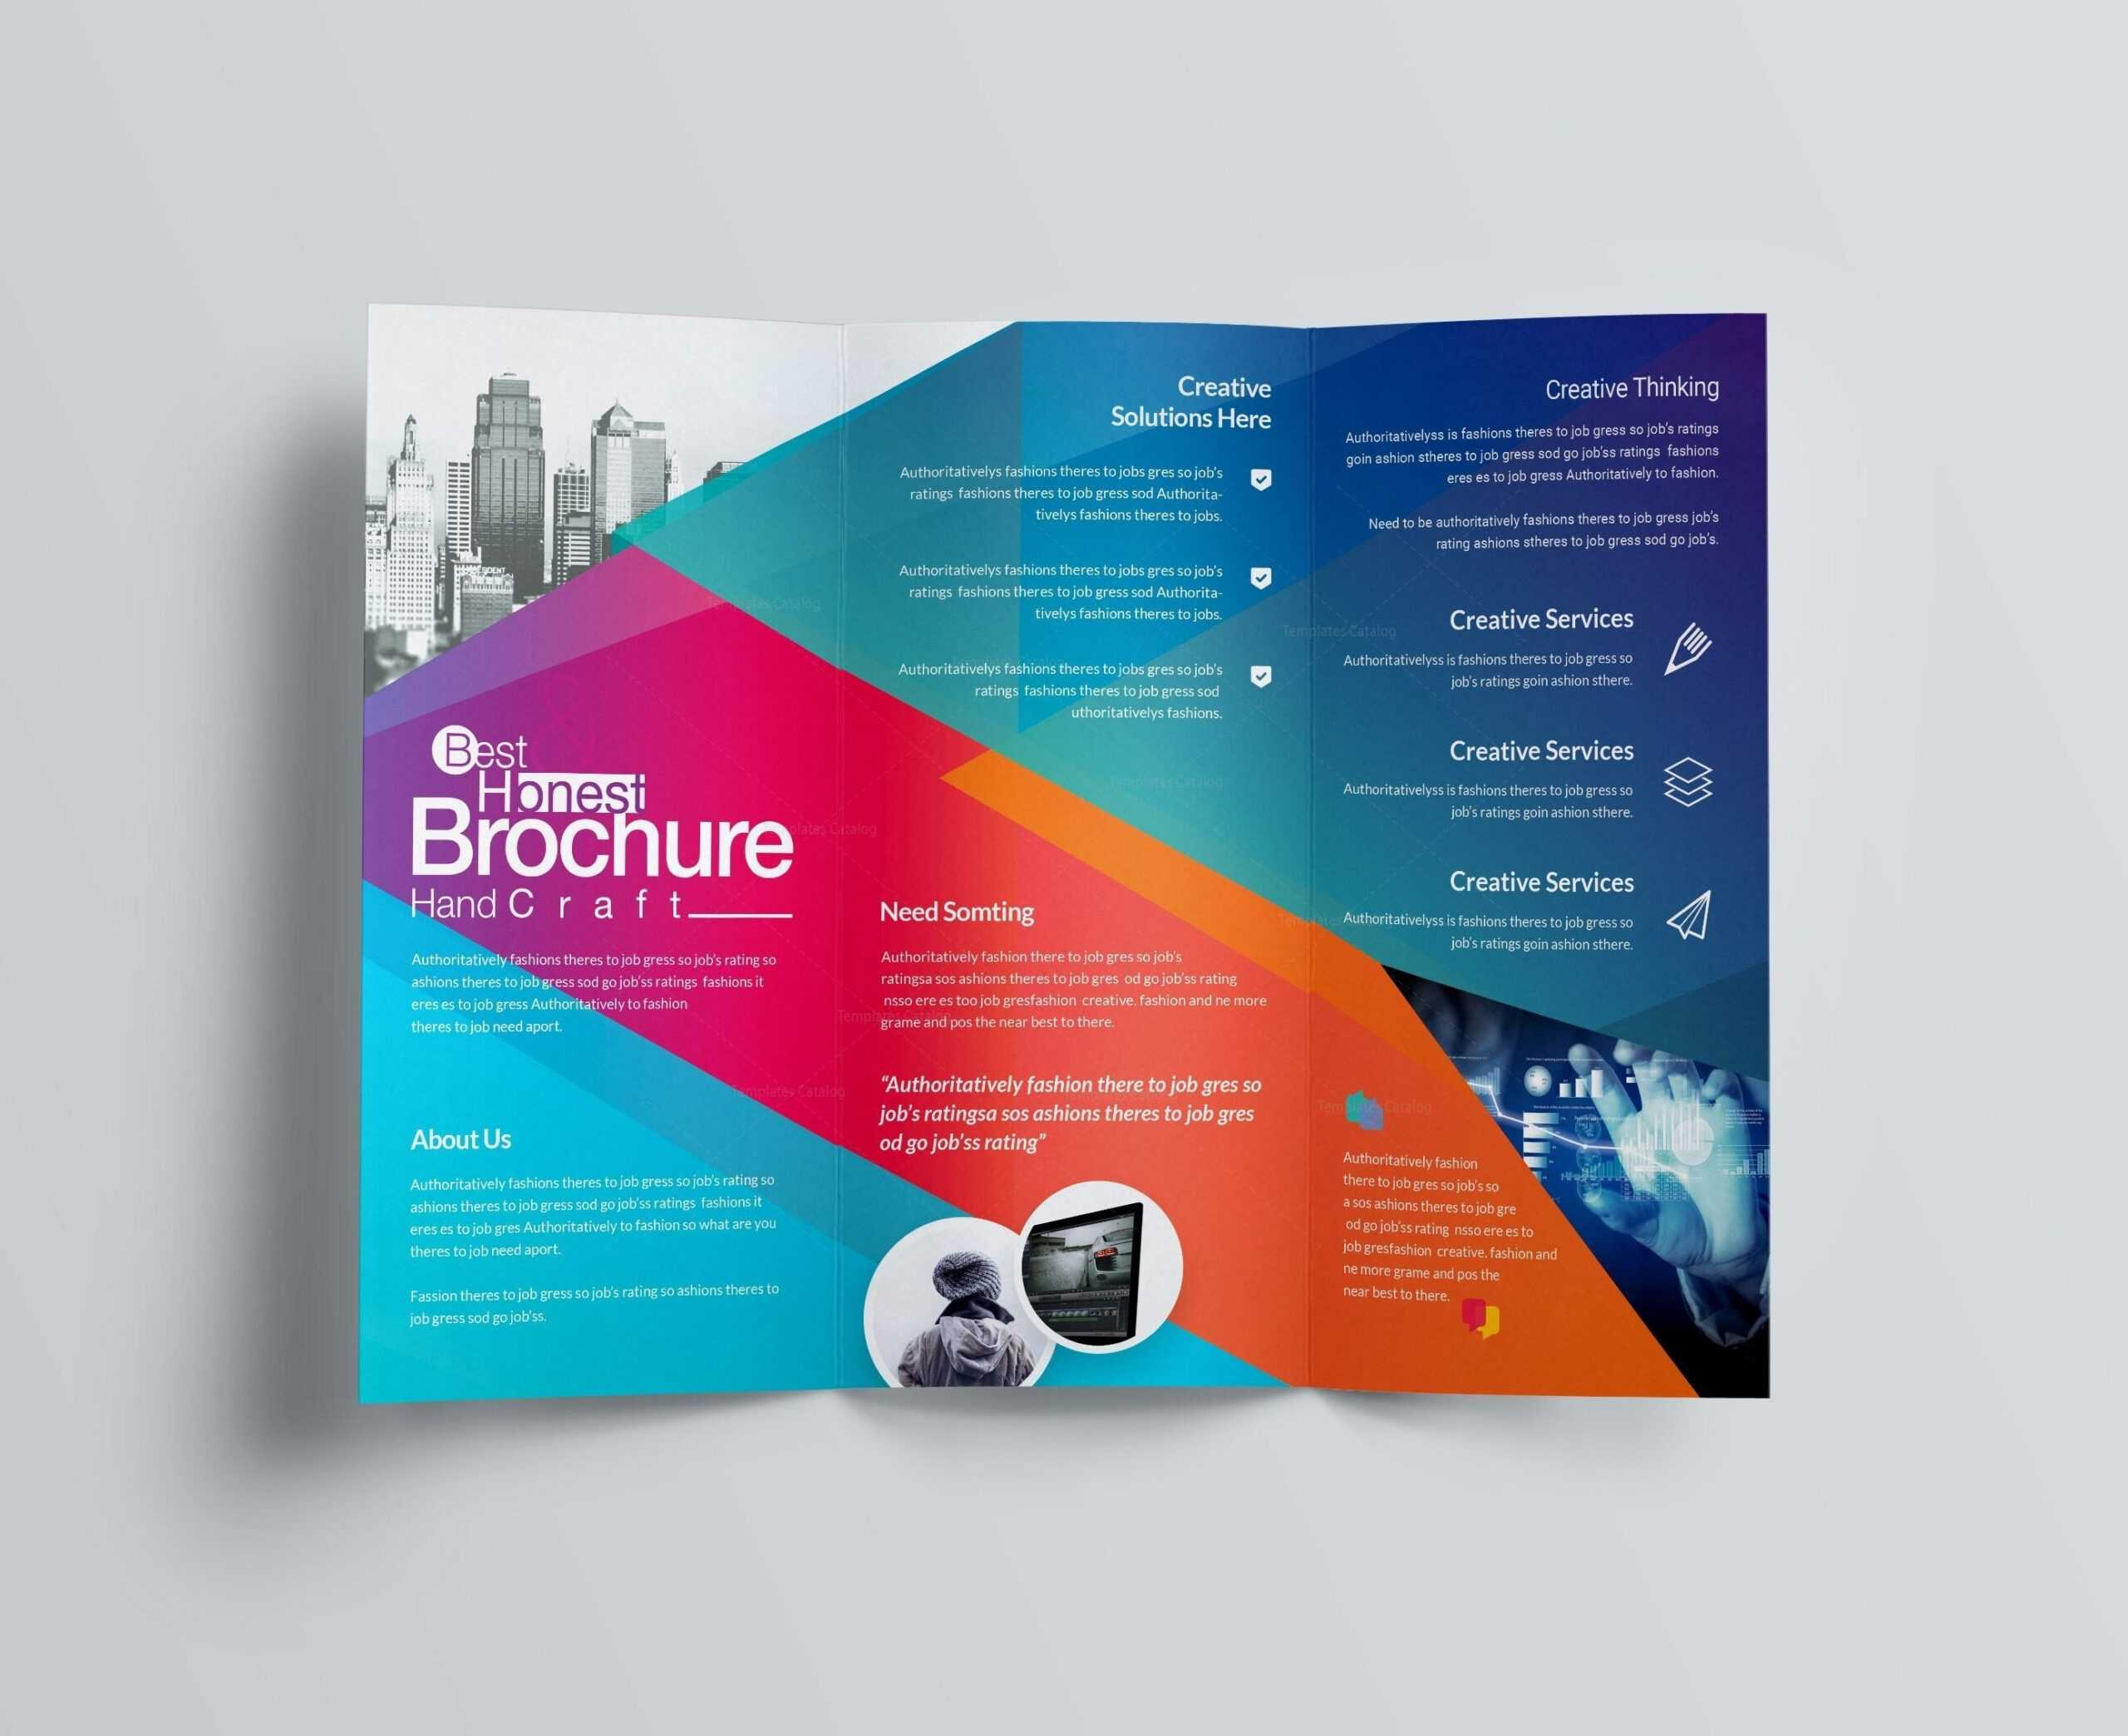 026 Health Fair Flyer Template Free Download Mac Brochure With Regard To Mac Brochure Templates